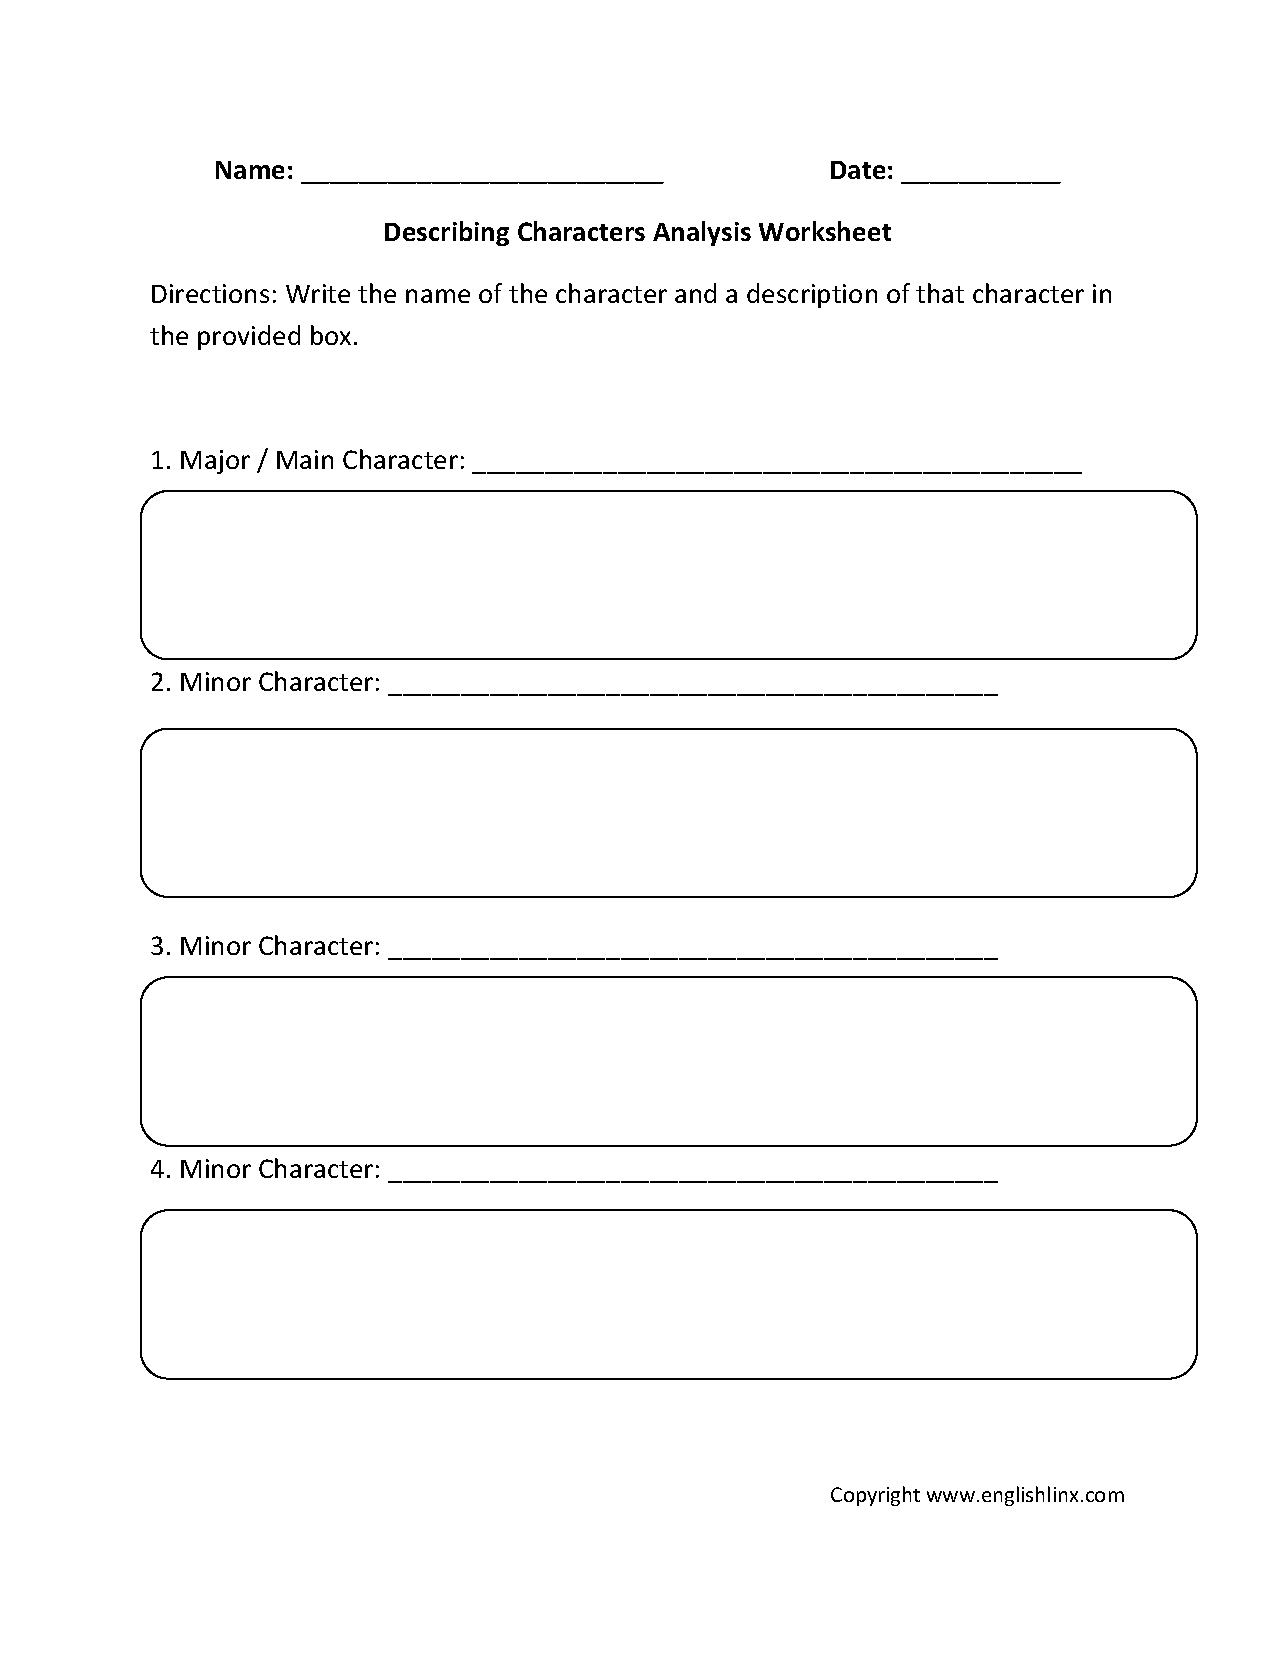 Worksheets Character Sketch Worksheet englishlinx com character analysis worksheets worksheets